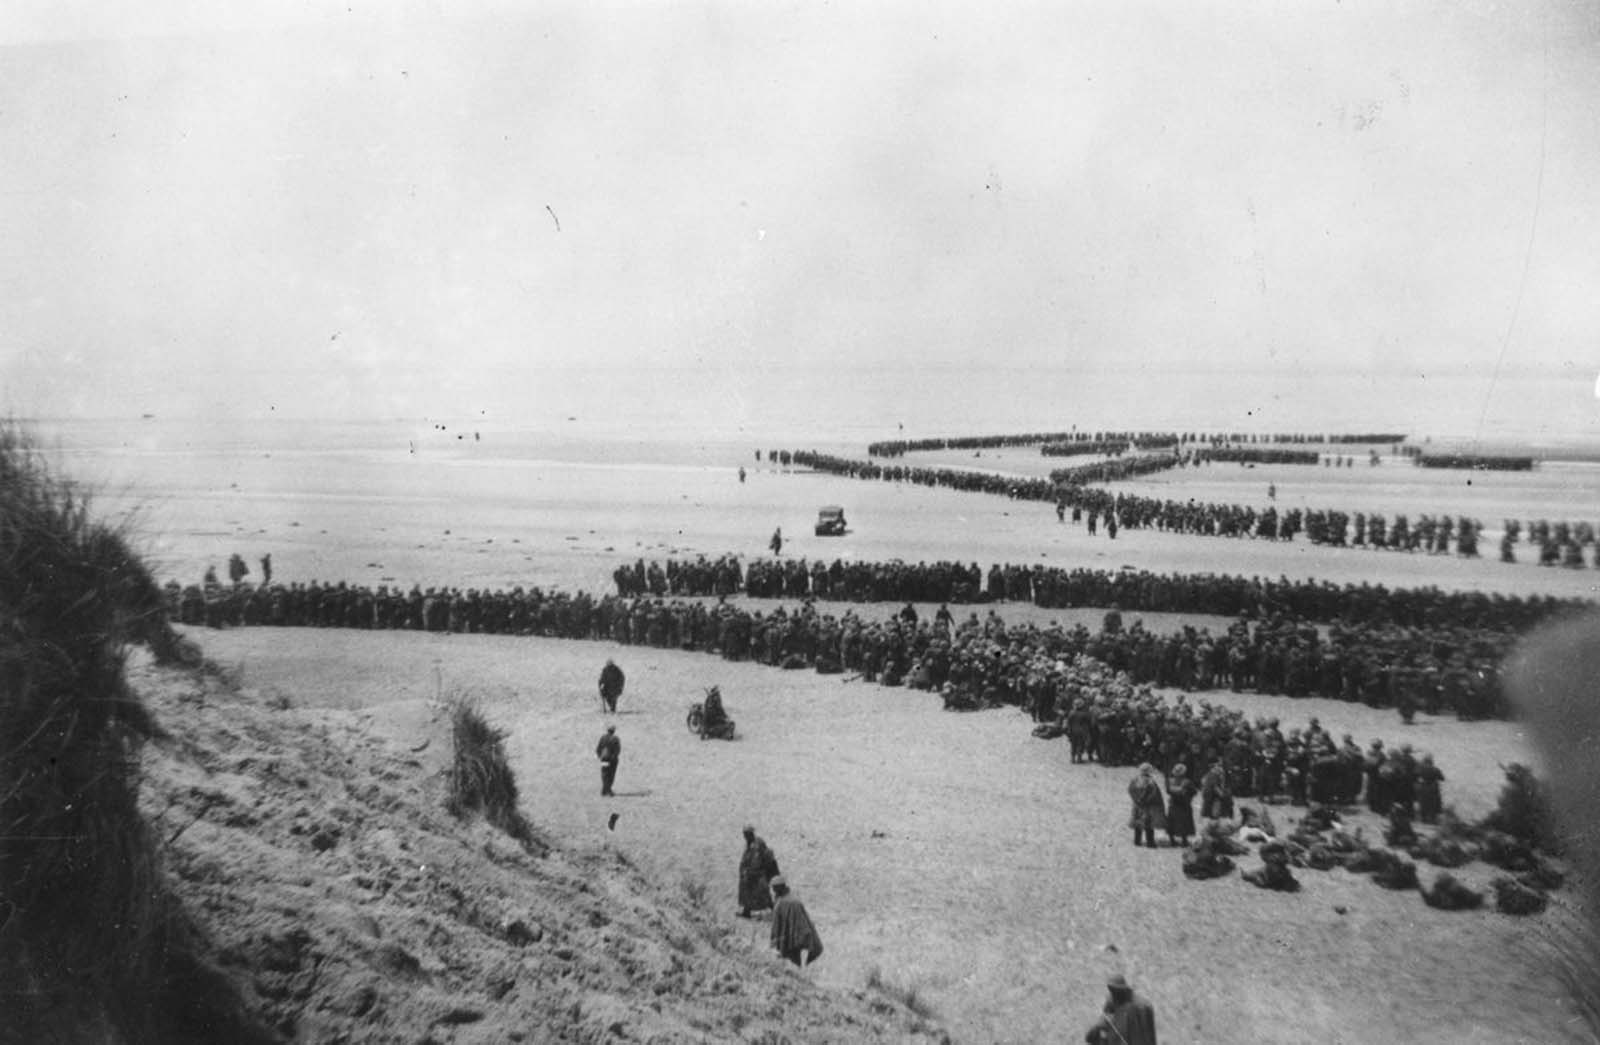 British Expeditionary Forces queued up on the beach at Dunkirk as they await evacuation.